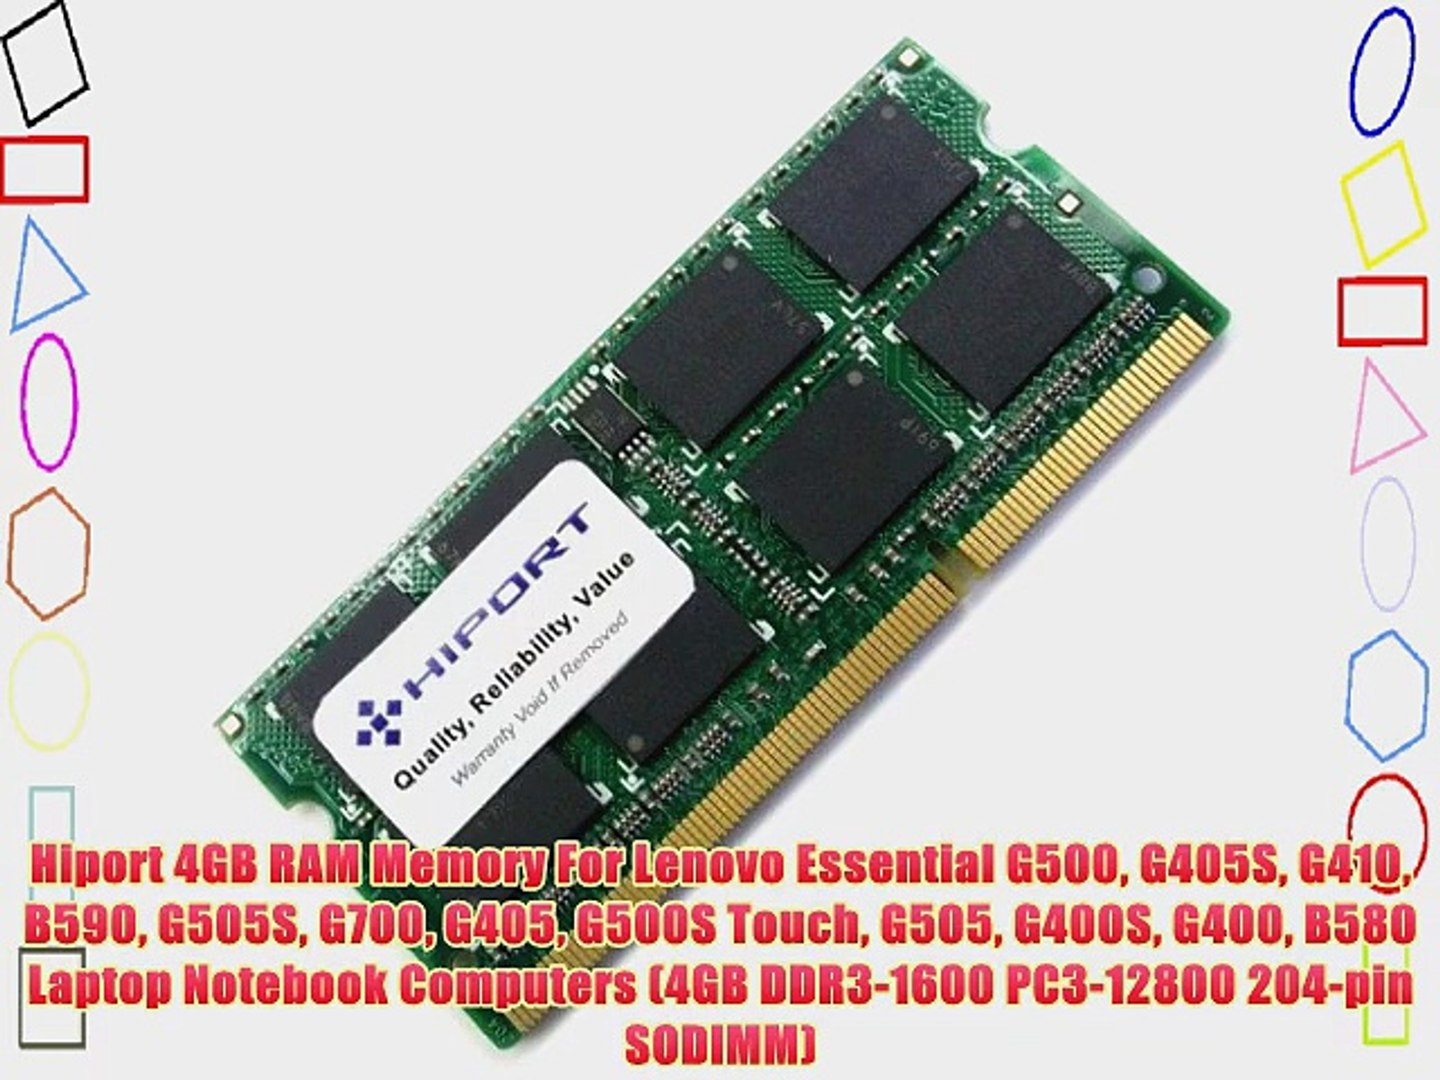 1X4GB RAM Memory Compatible with Lenovo Essential G500 15.6 Inch Laptop A20 4GB